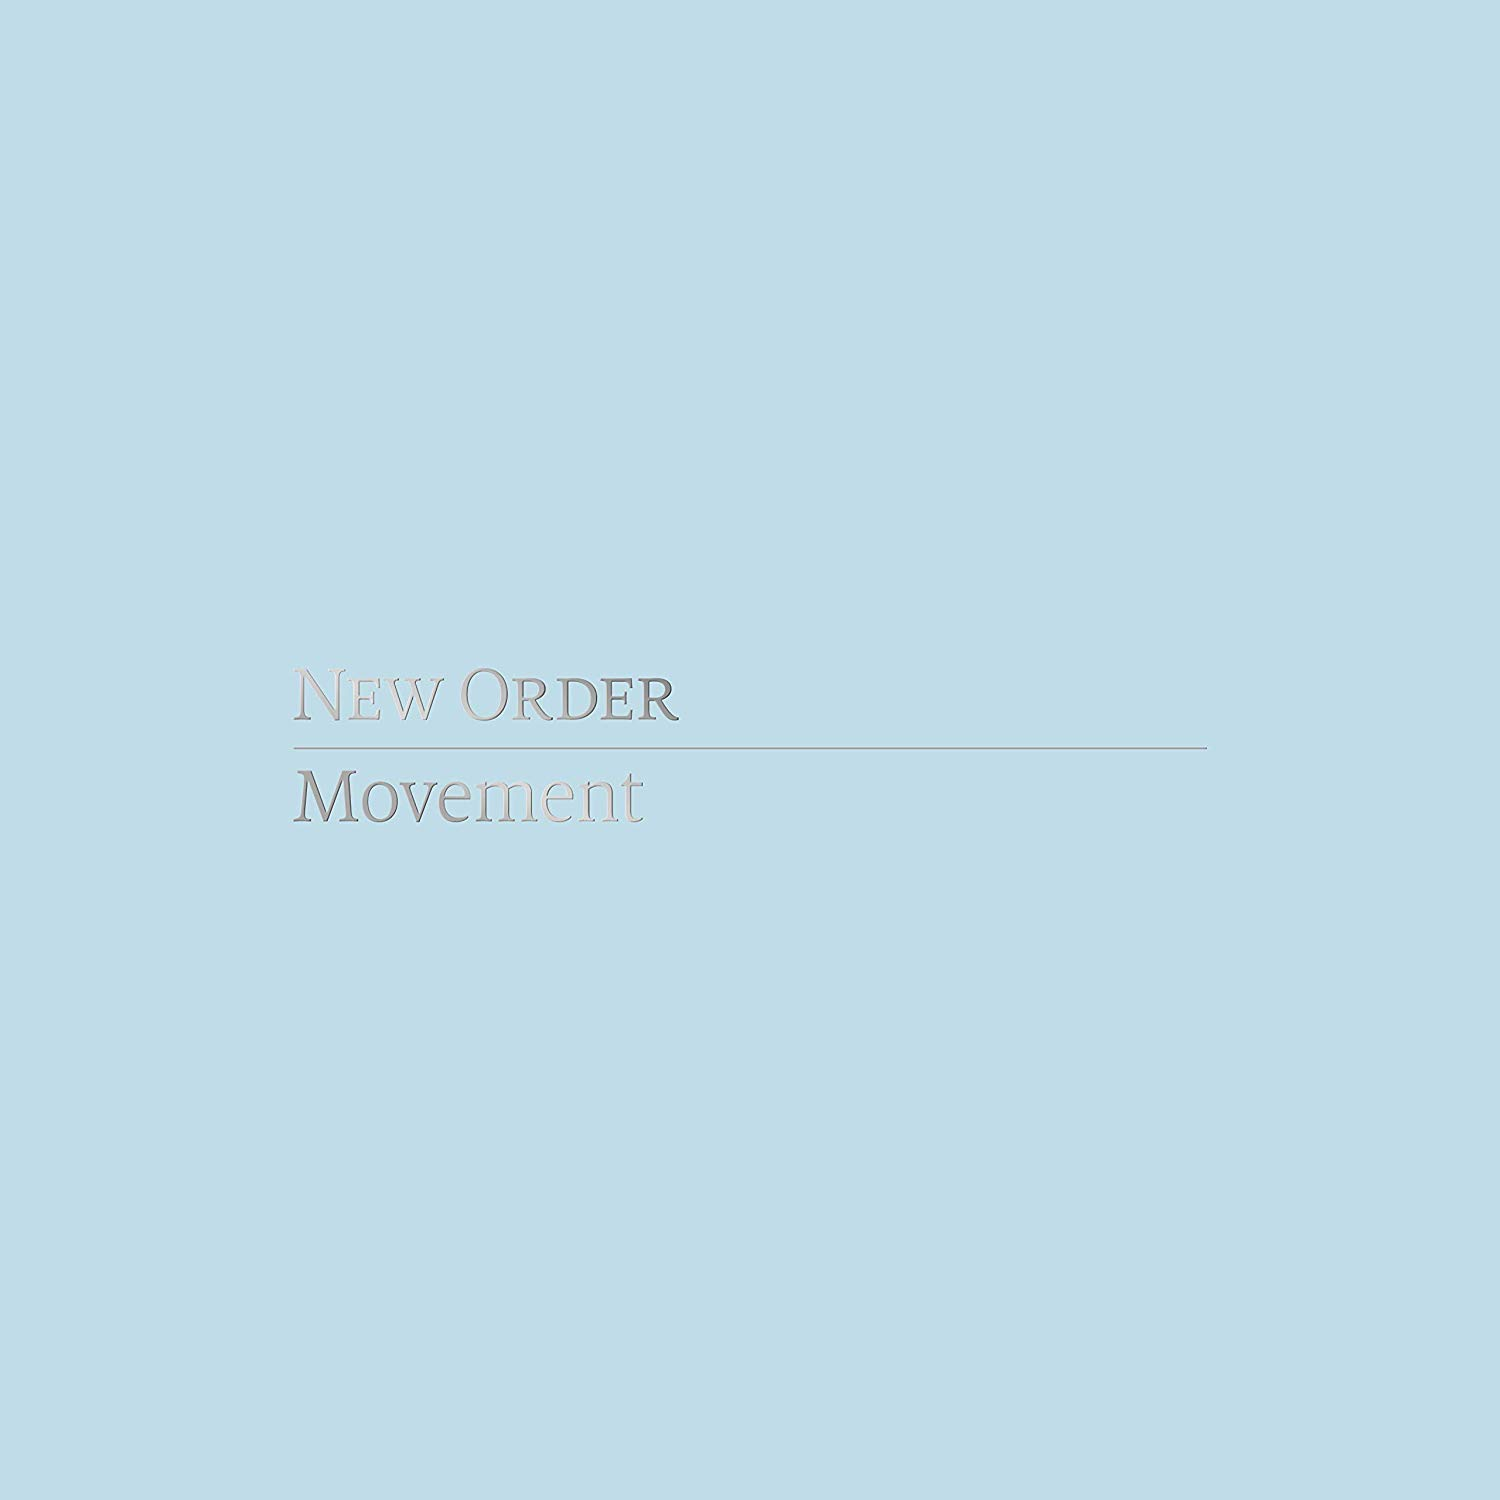 New Order - Movement (2019) [FLAC] Download